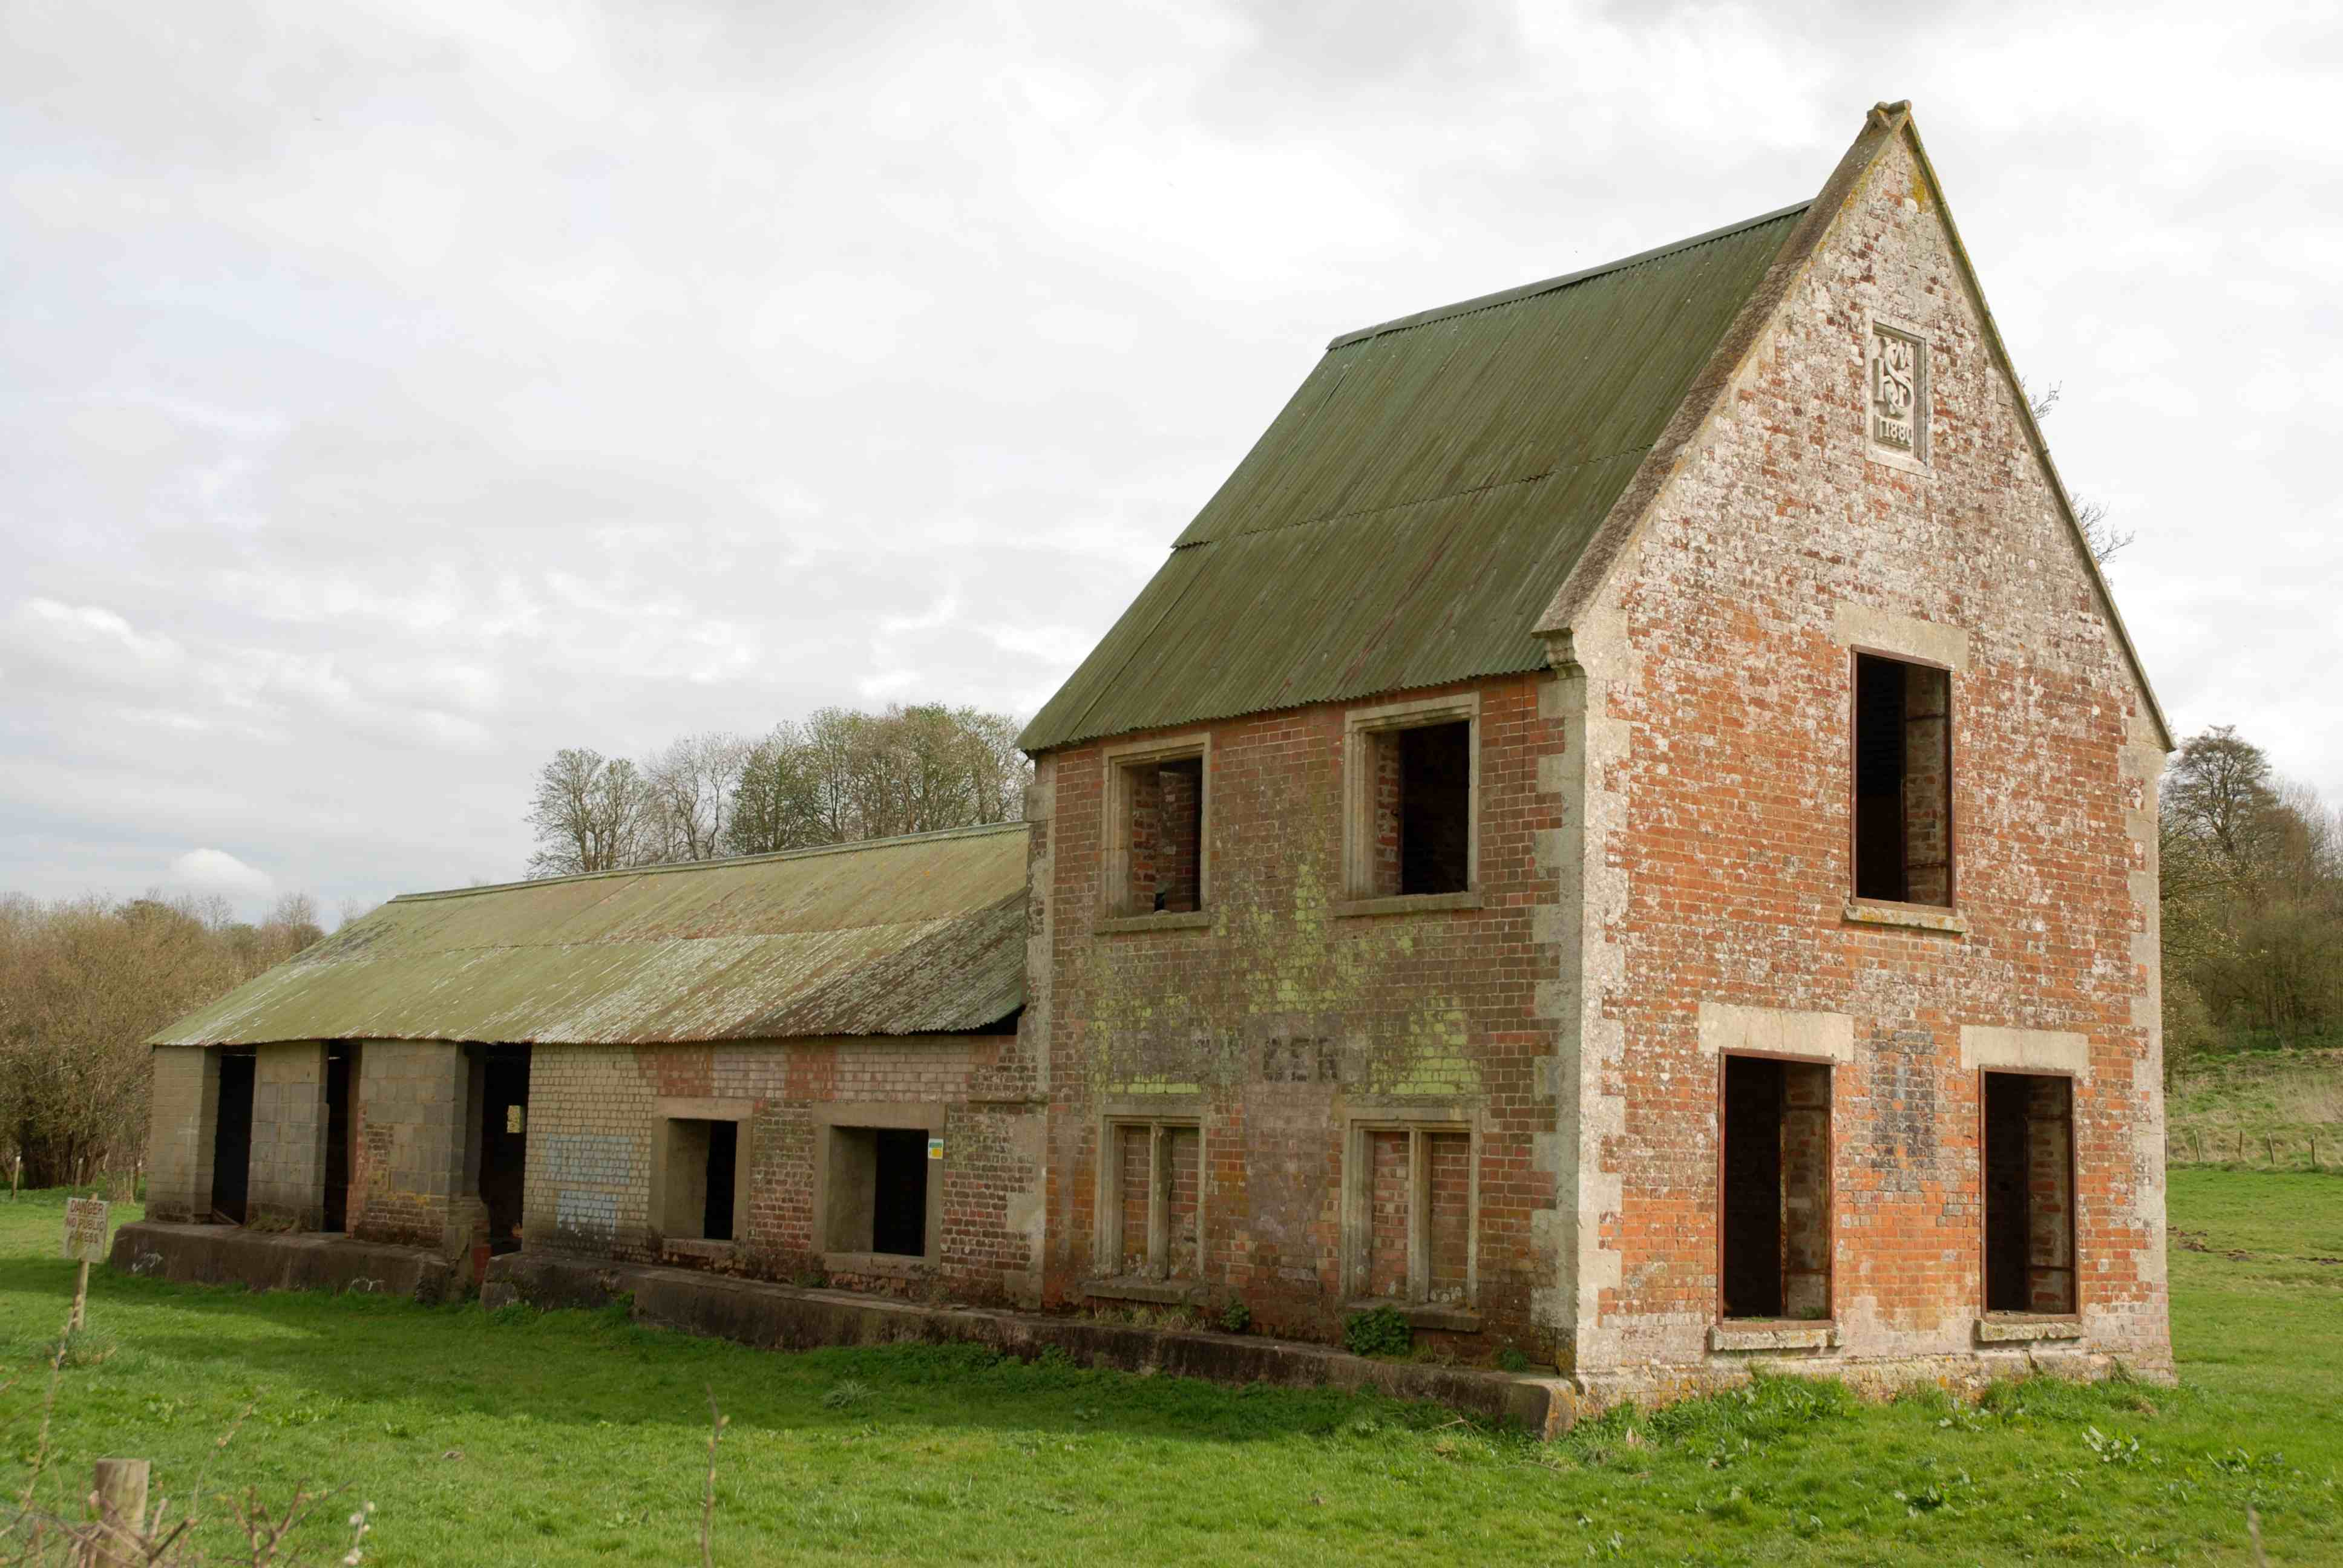 Imber - Abandoned Village Wiltshire tall building